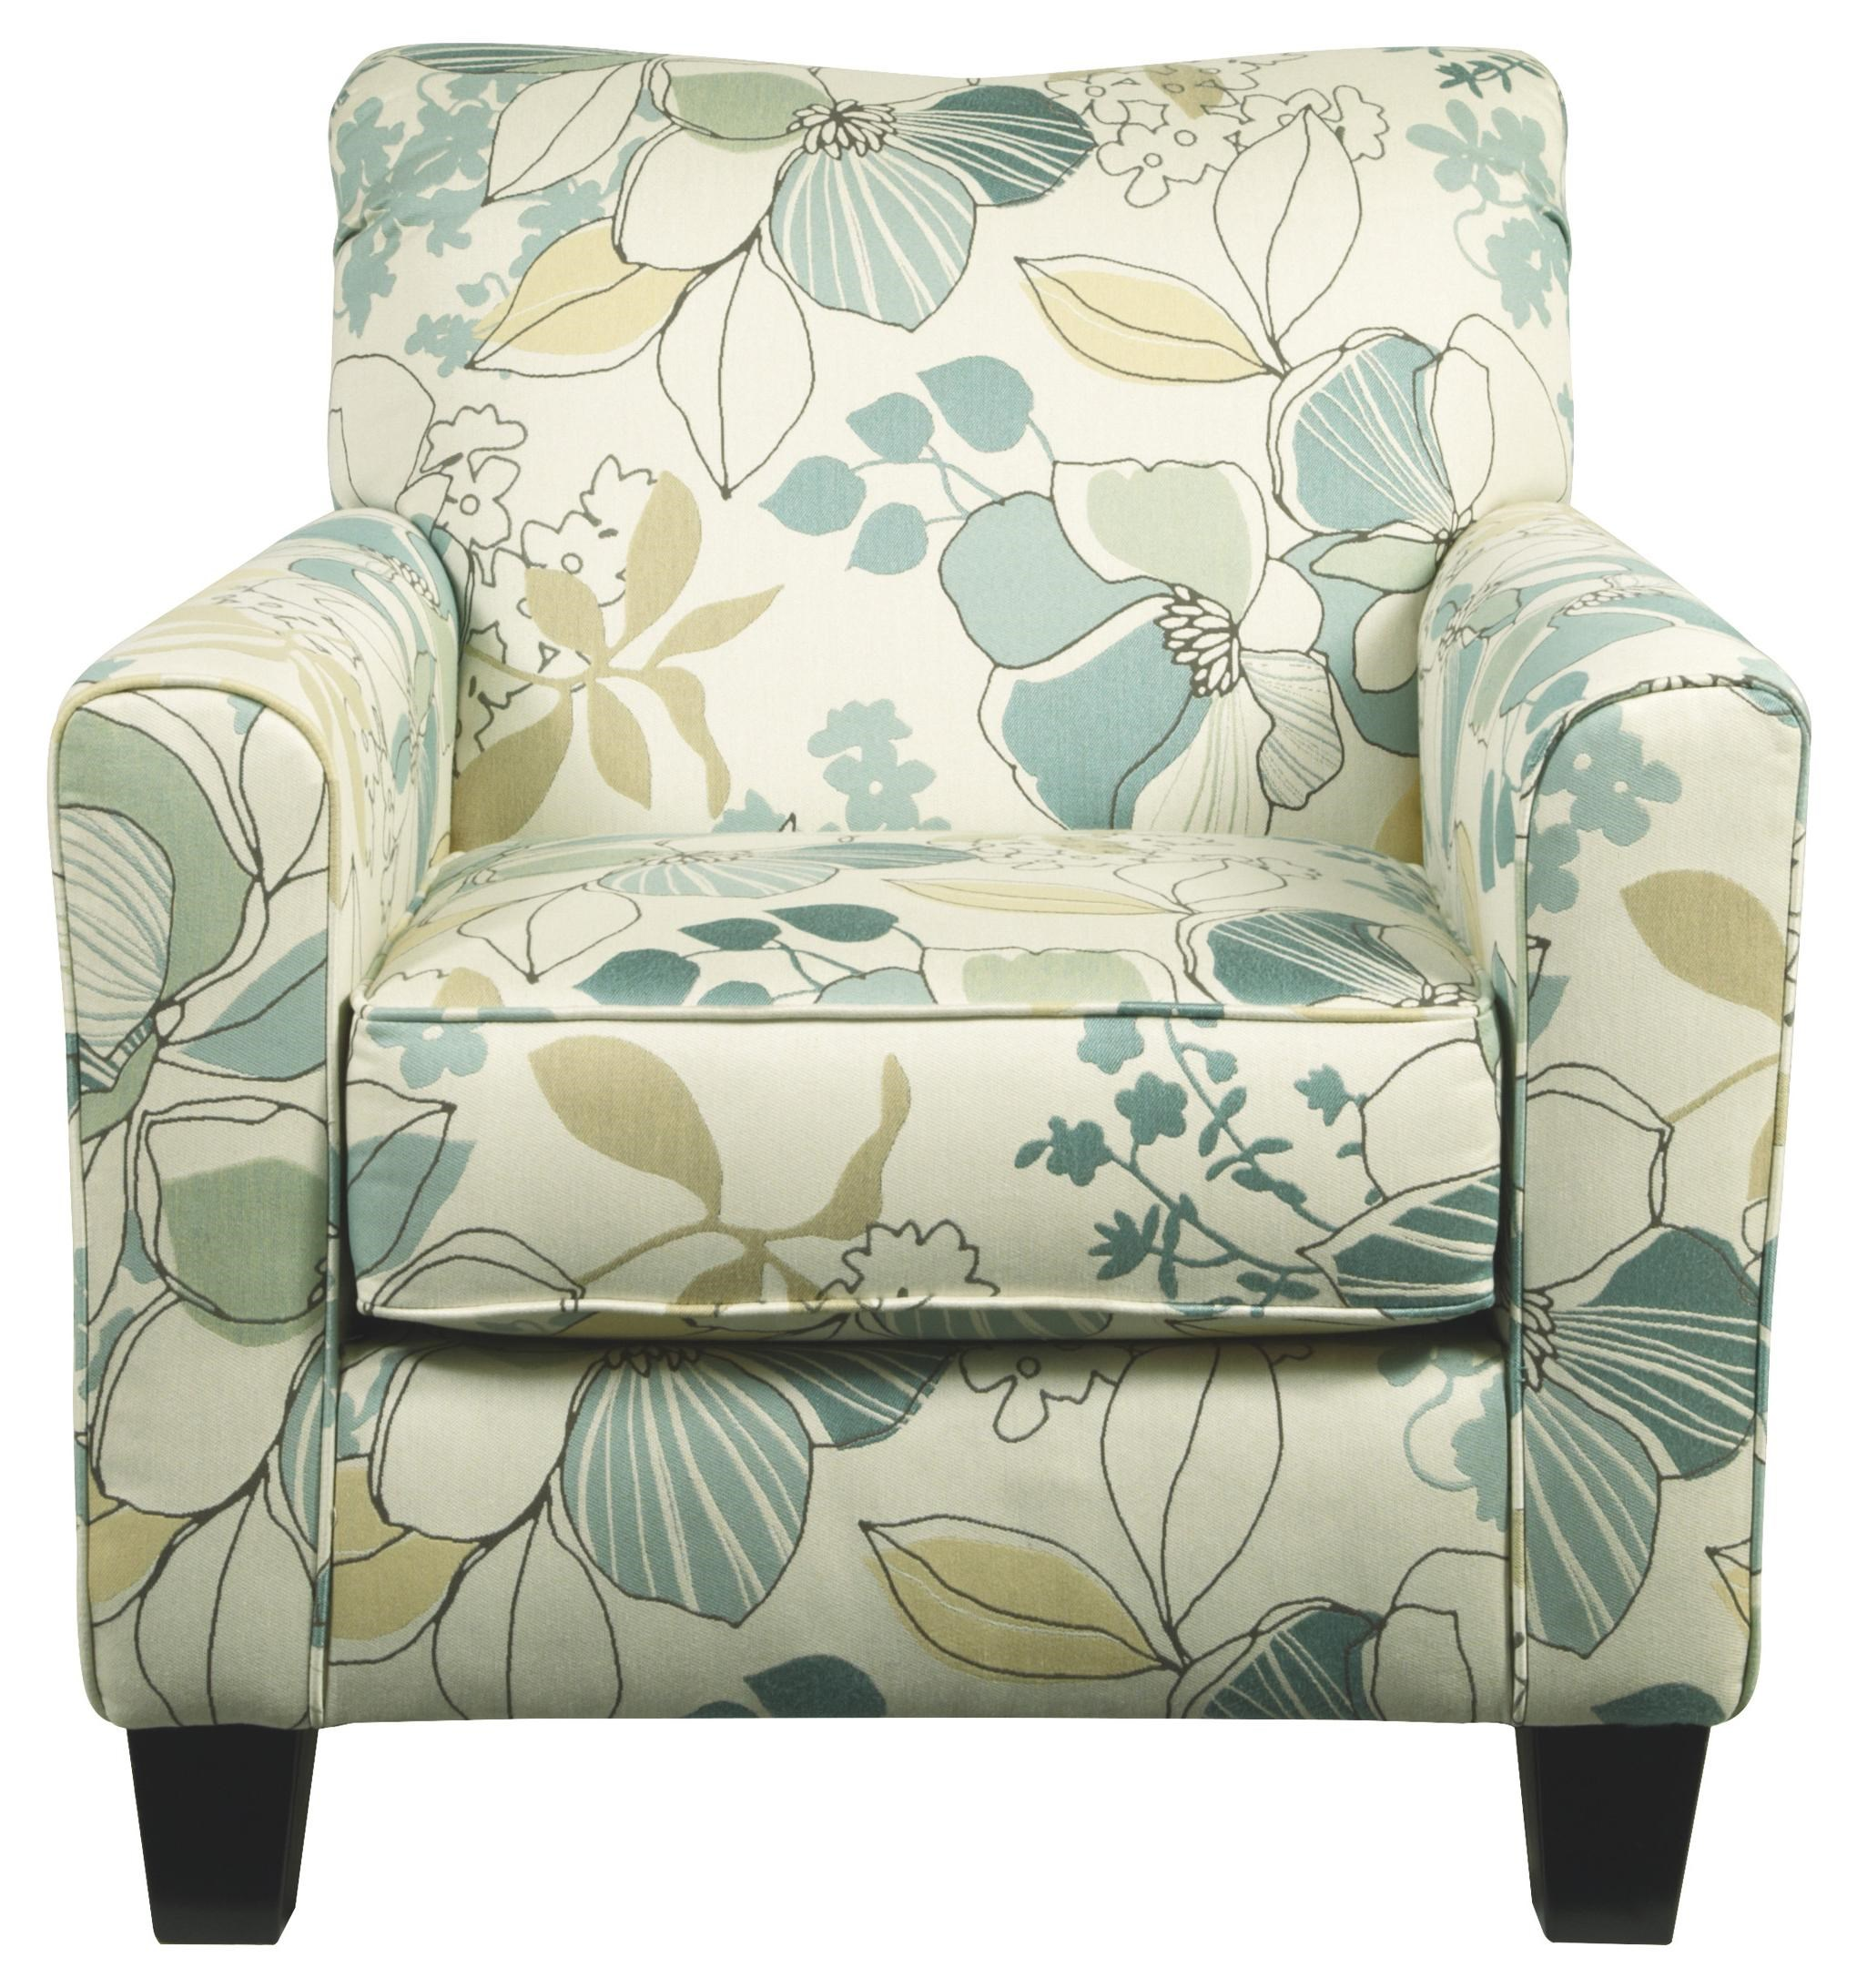 Nice Signature Design By Ashley Daystar   Seafoam Contemporary Accent Chair With Floral  Fabric